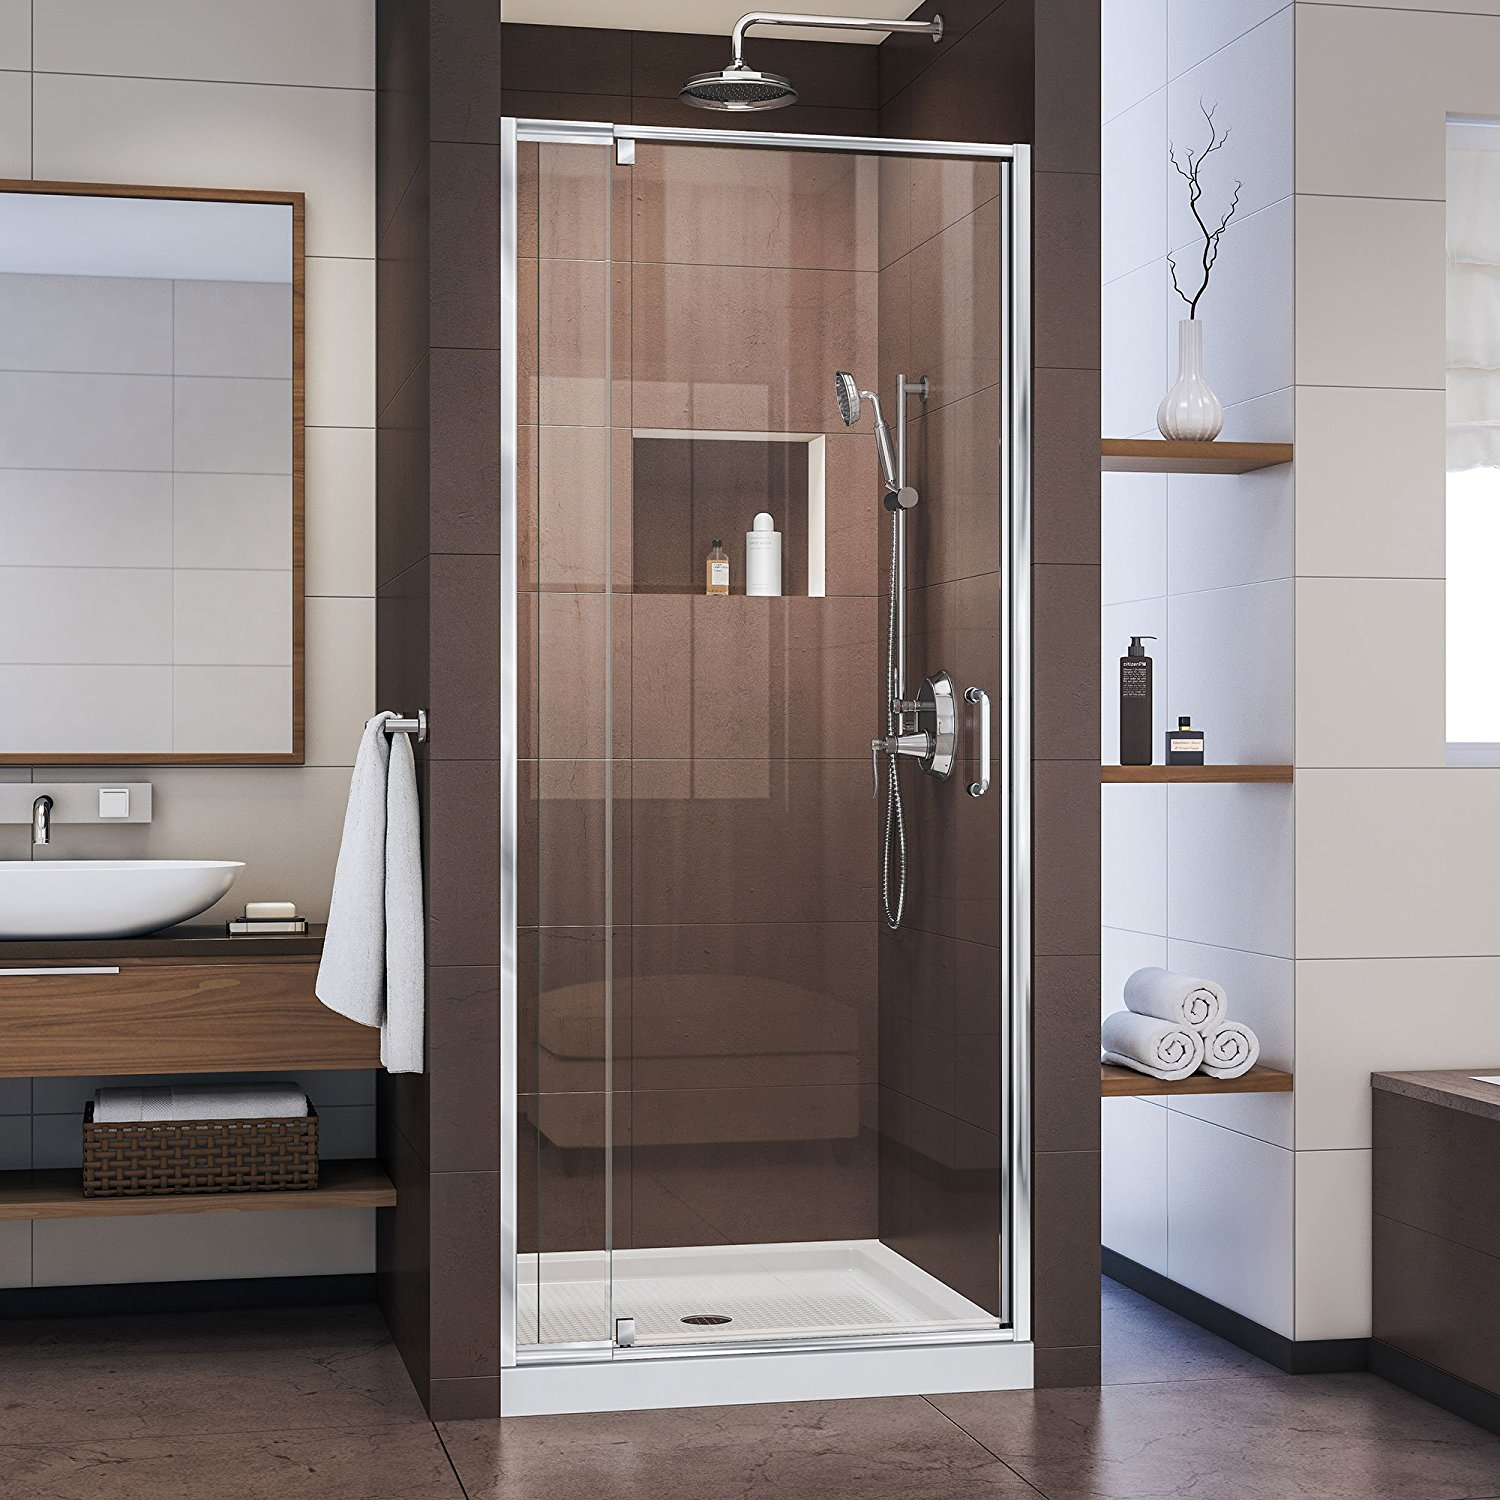 "DreamLine Flex 32-36 in. Width, Frameless Pivot Shower Door, 1/4"" Glass, Chrome Finish"